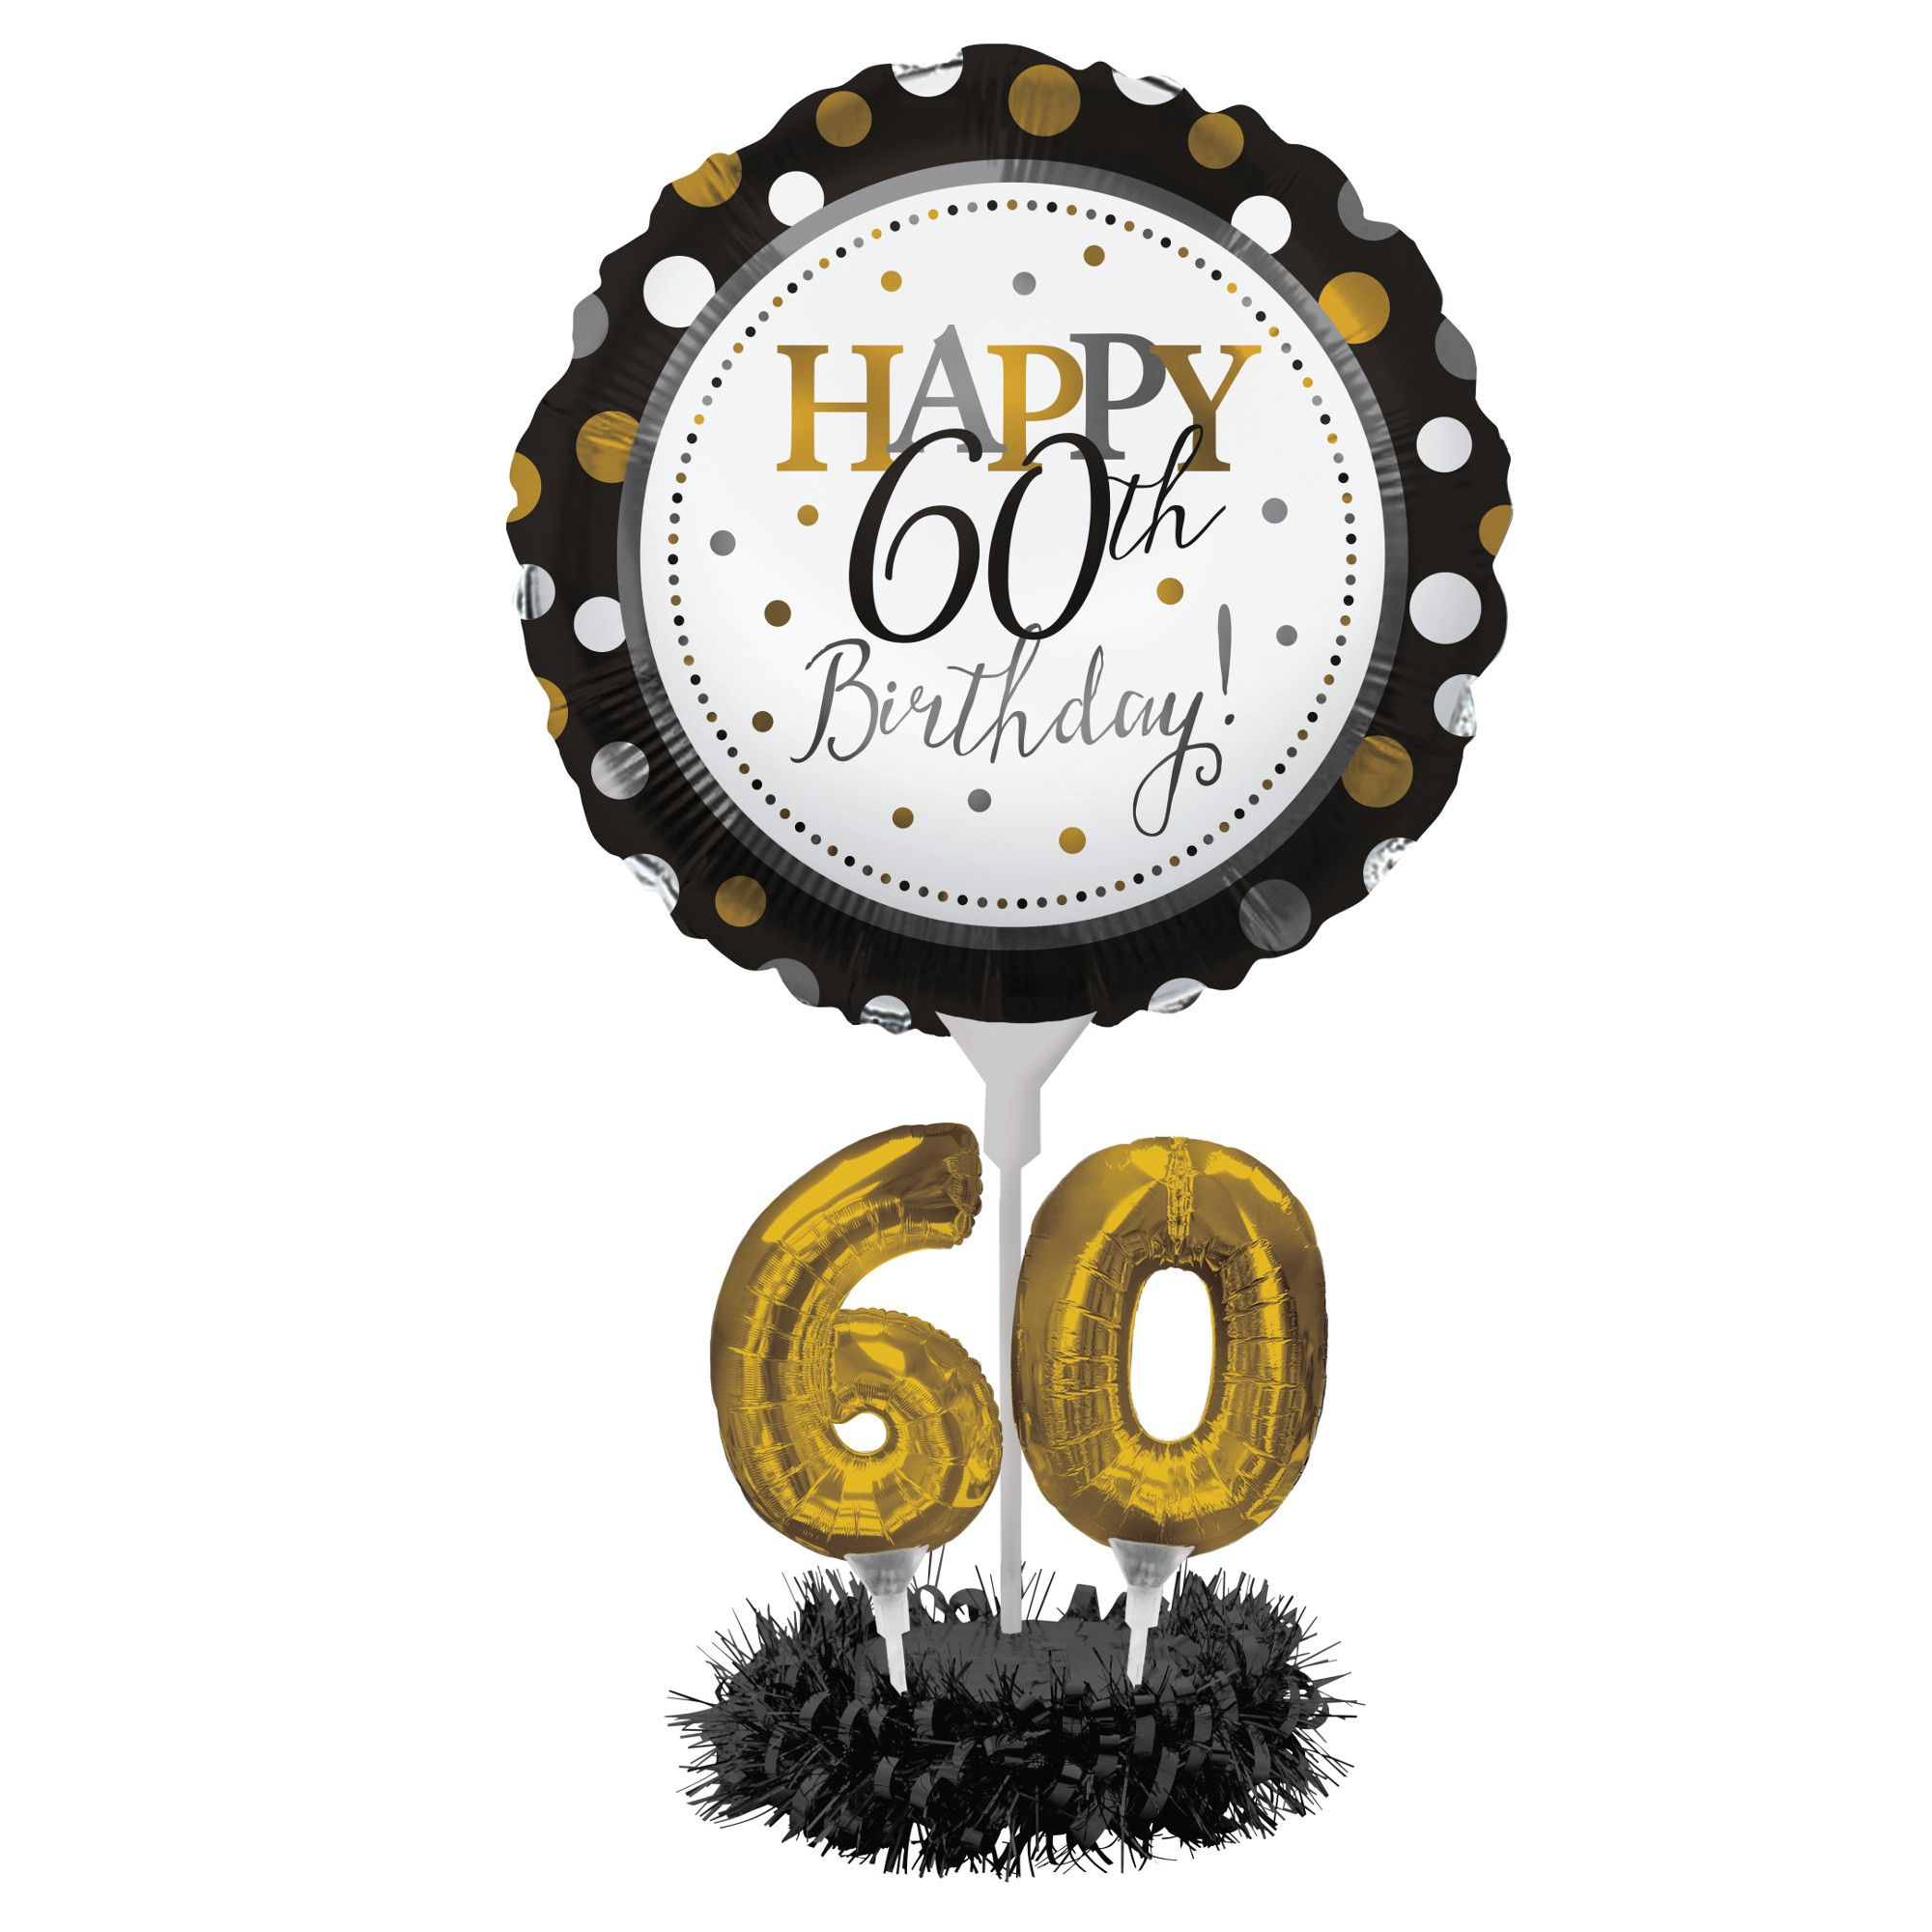 Air Filled Balloon 60th Birthday Centerpiece Kit 50th